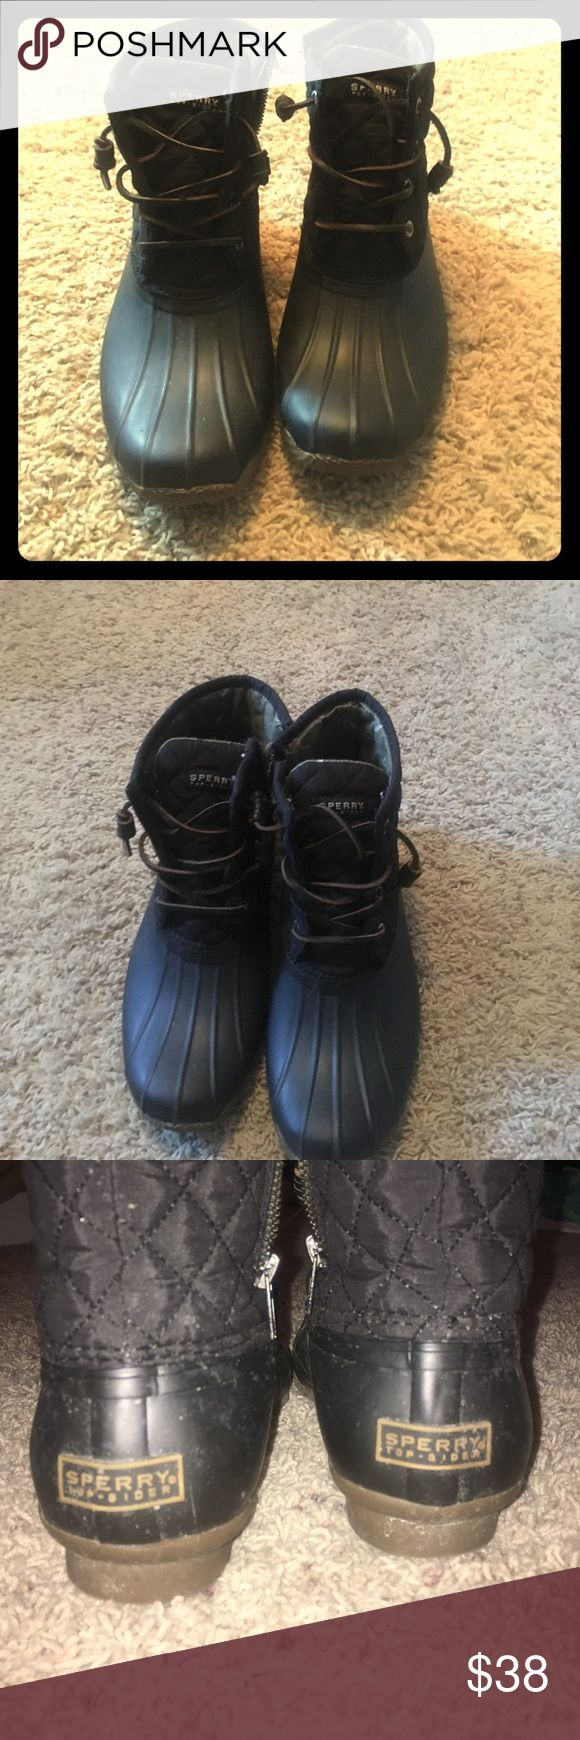 Black Sperry Rain boots. Good condition. Black quilted on top. Great for rain or snow. Sperry Top-Sider Shoes Winter & Rain Boots